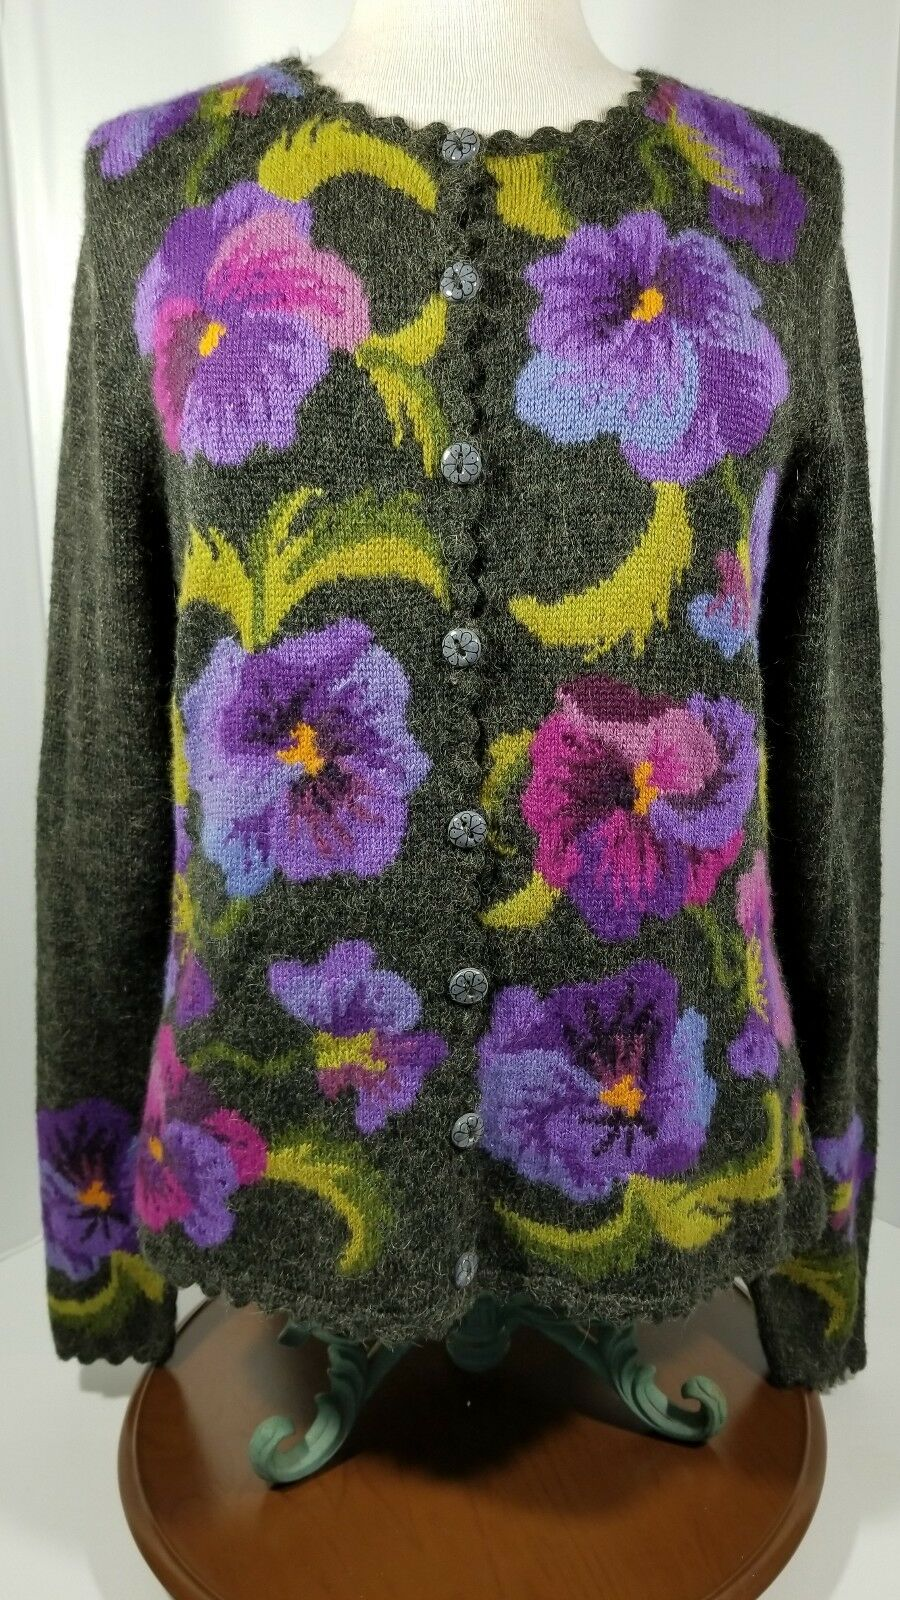 Alpaca Imports colorful Floral Buttoned Cardigan Sweater Women's Size Large L